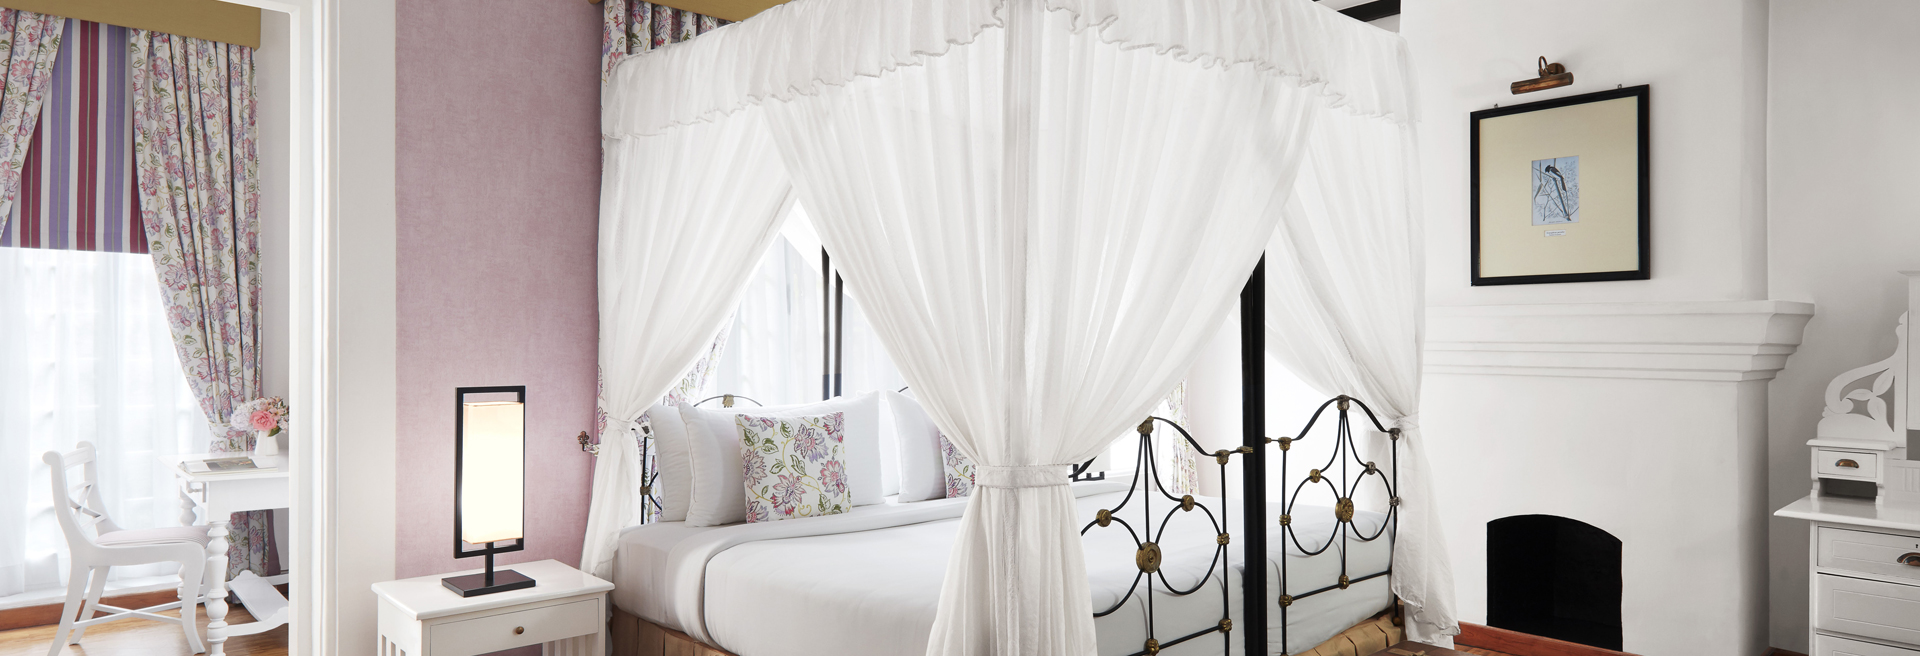 Luxury Suite room at Jetwing St. Andrew's